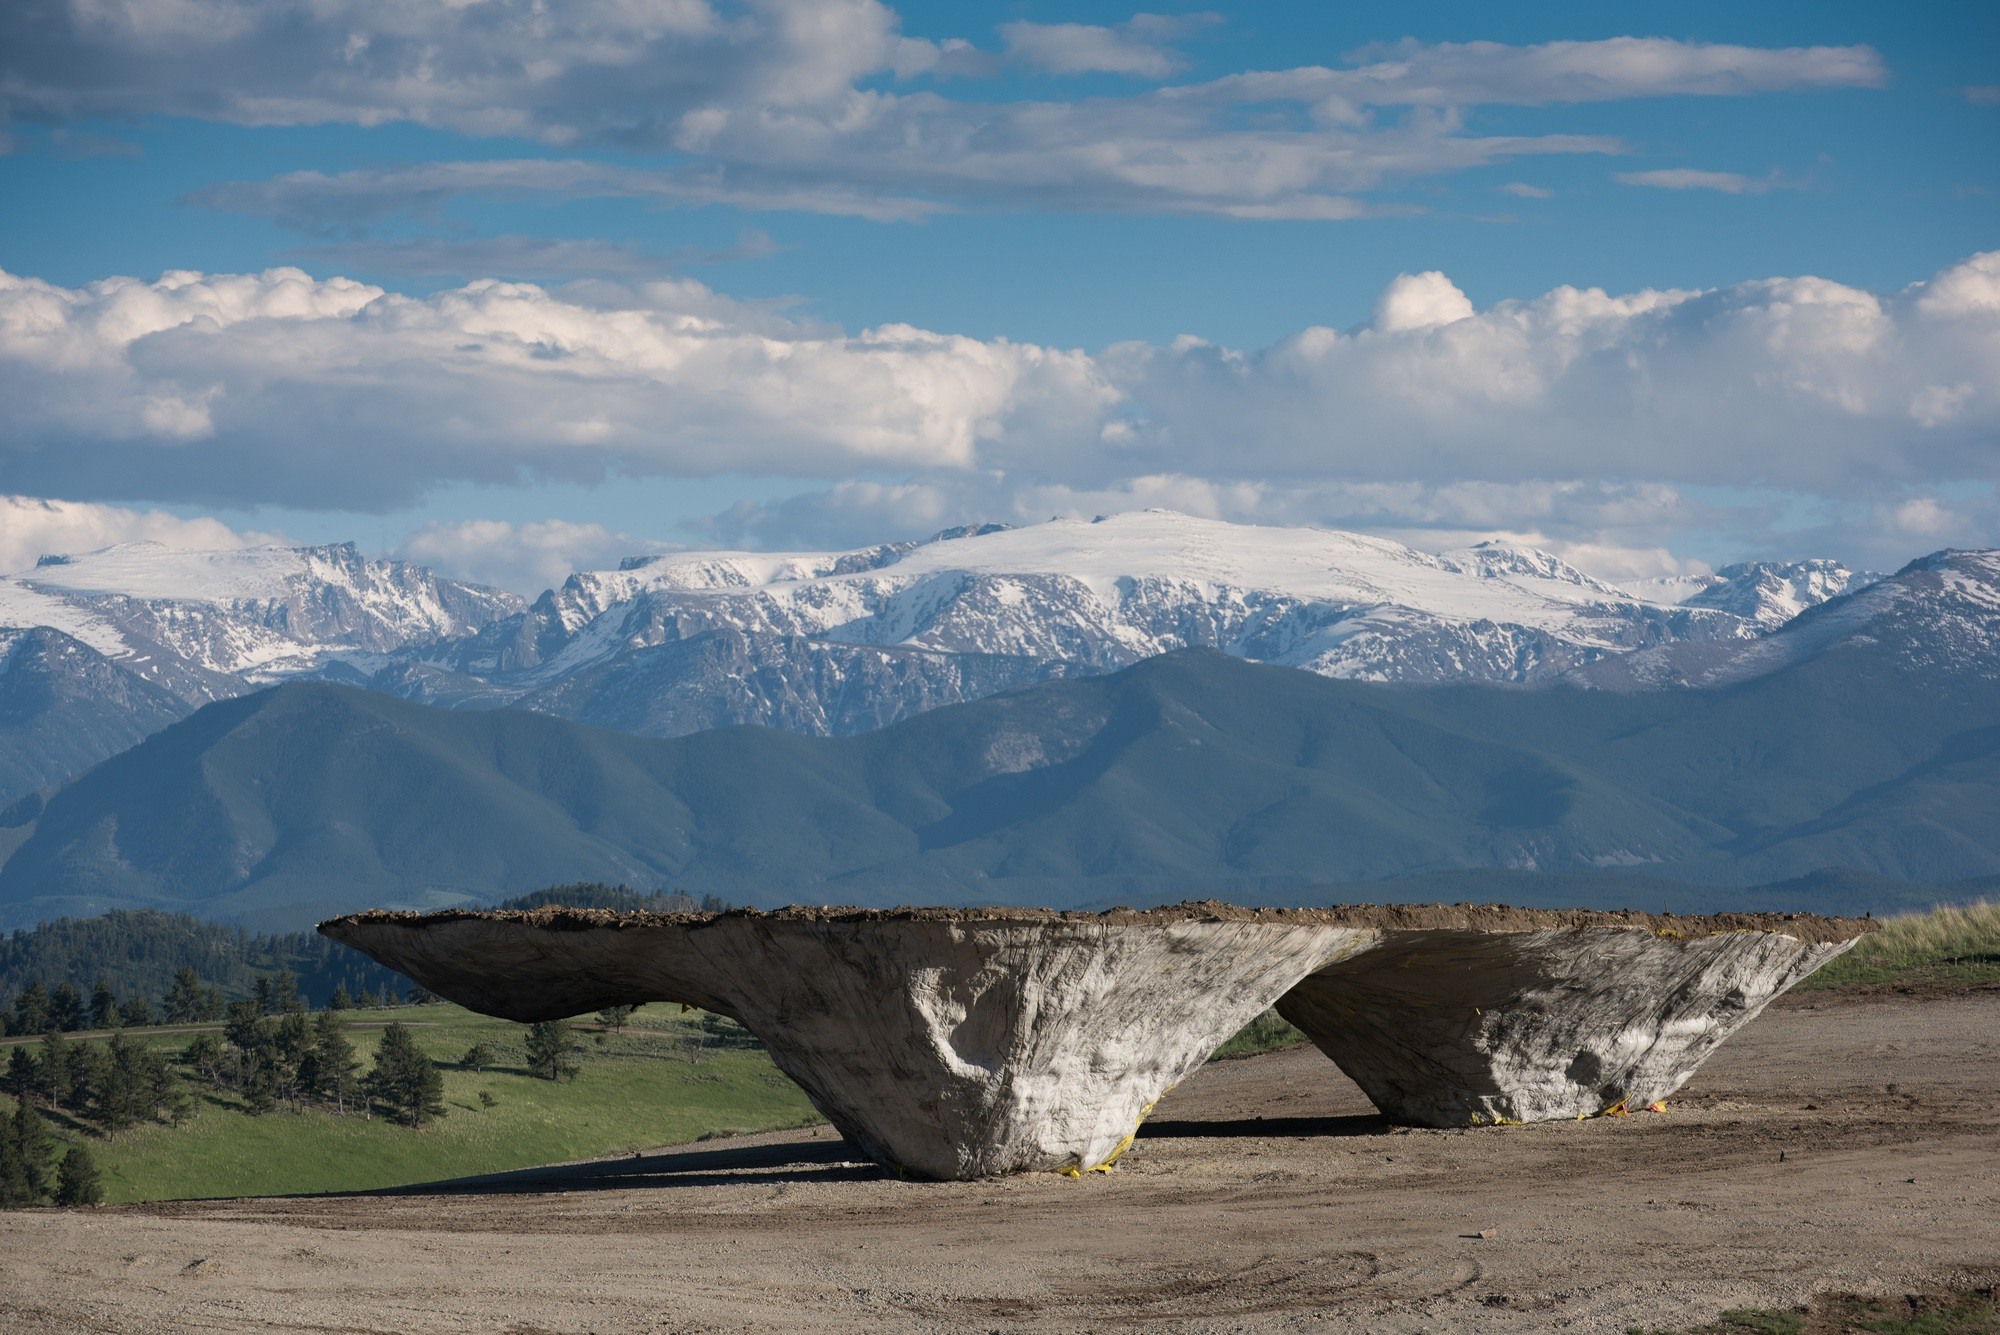 Gallery Of Tippet Rise Art Center Combines Architecture Art Music And Mountains In Montana 37